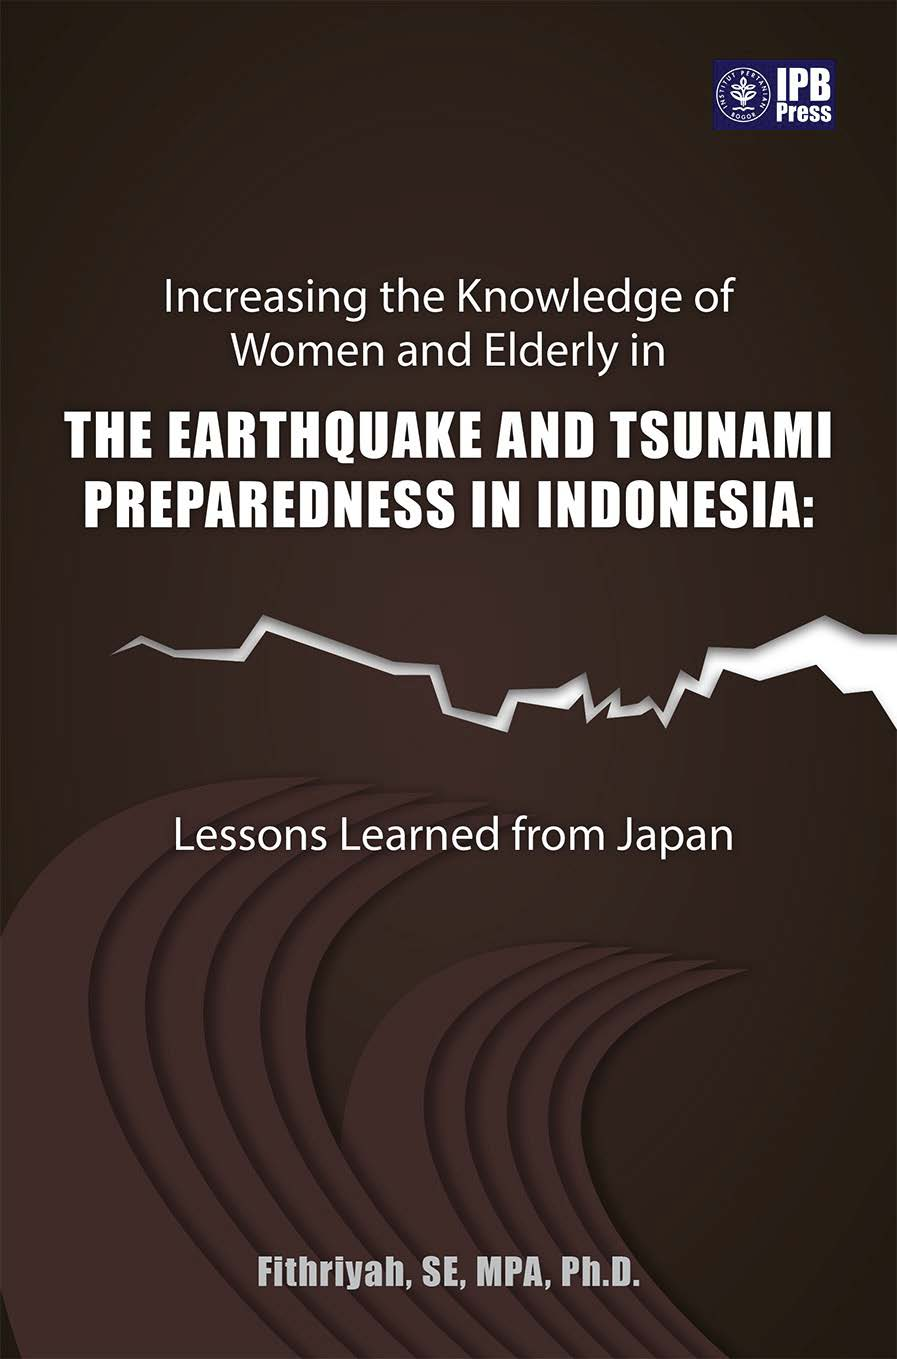 Increasing the knowledge of women and elderly in the earthquake and tsunami preparedness in Indonesia: lessons learned from Japan [sumber elektronis]